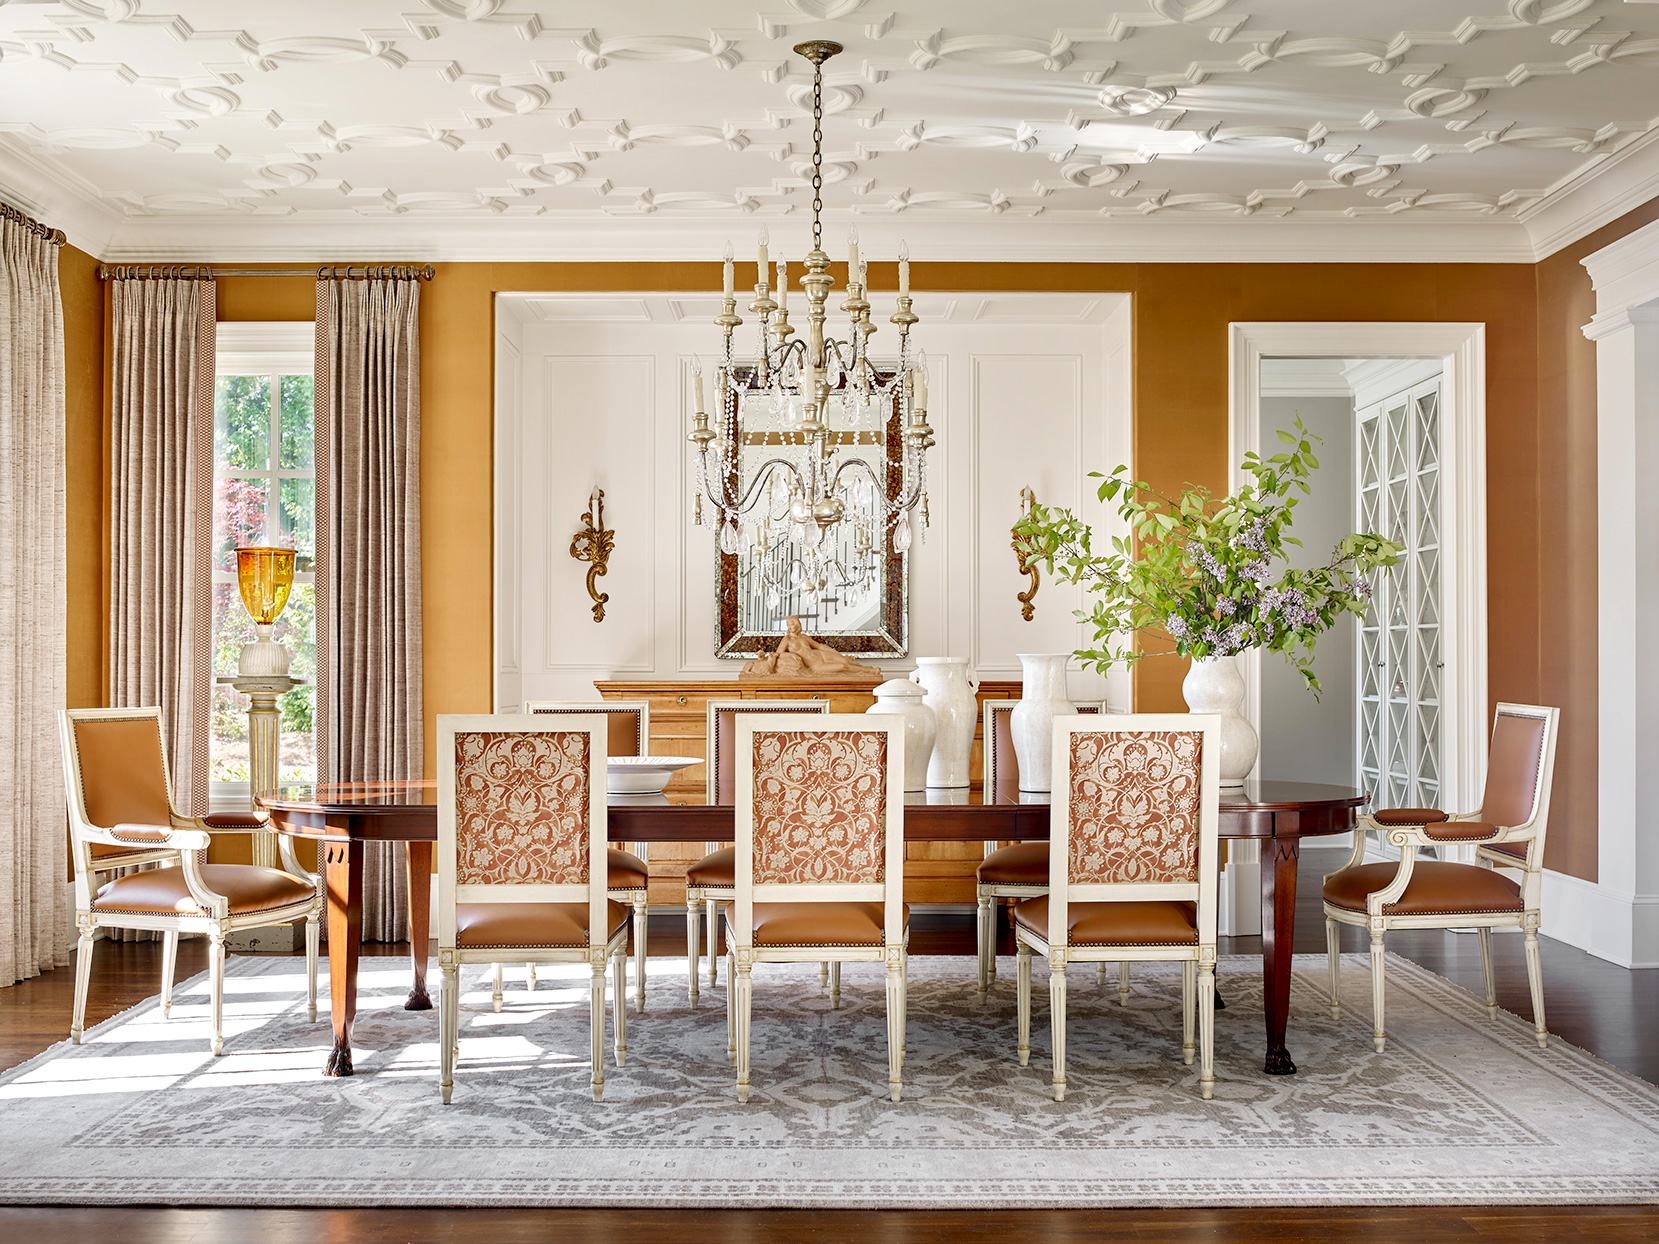 Dining area with patterned chairs